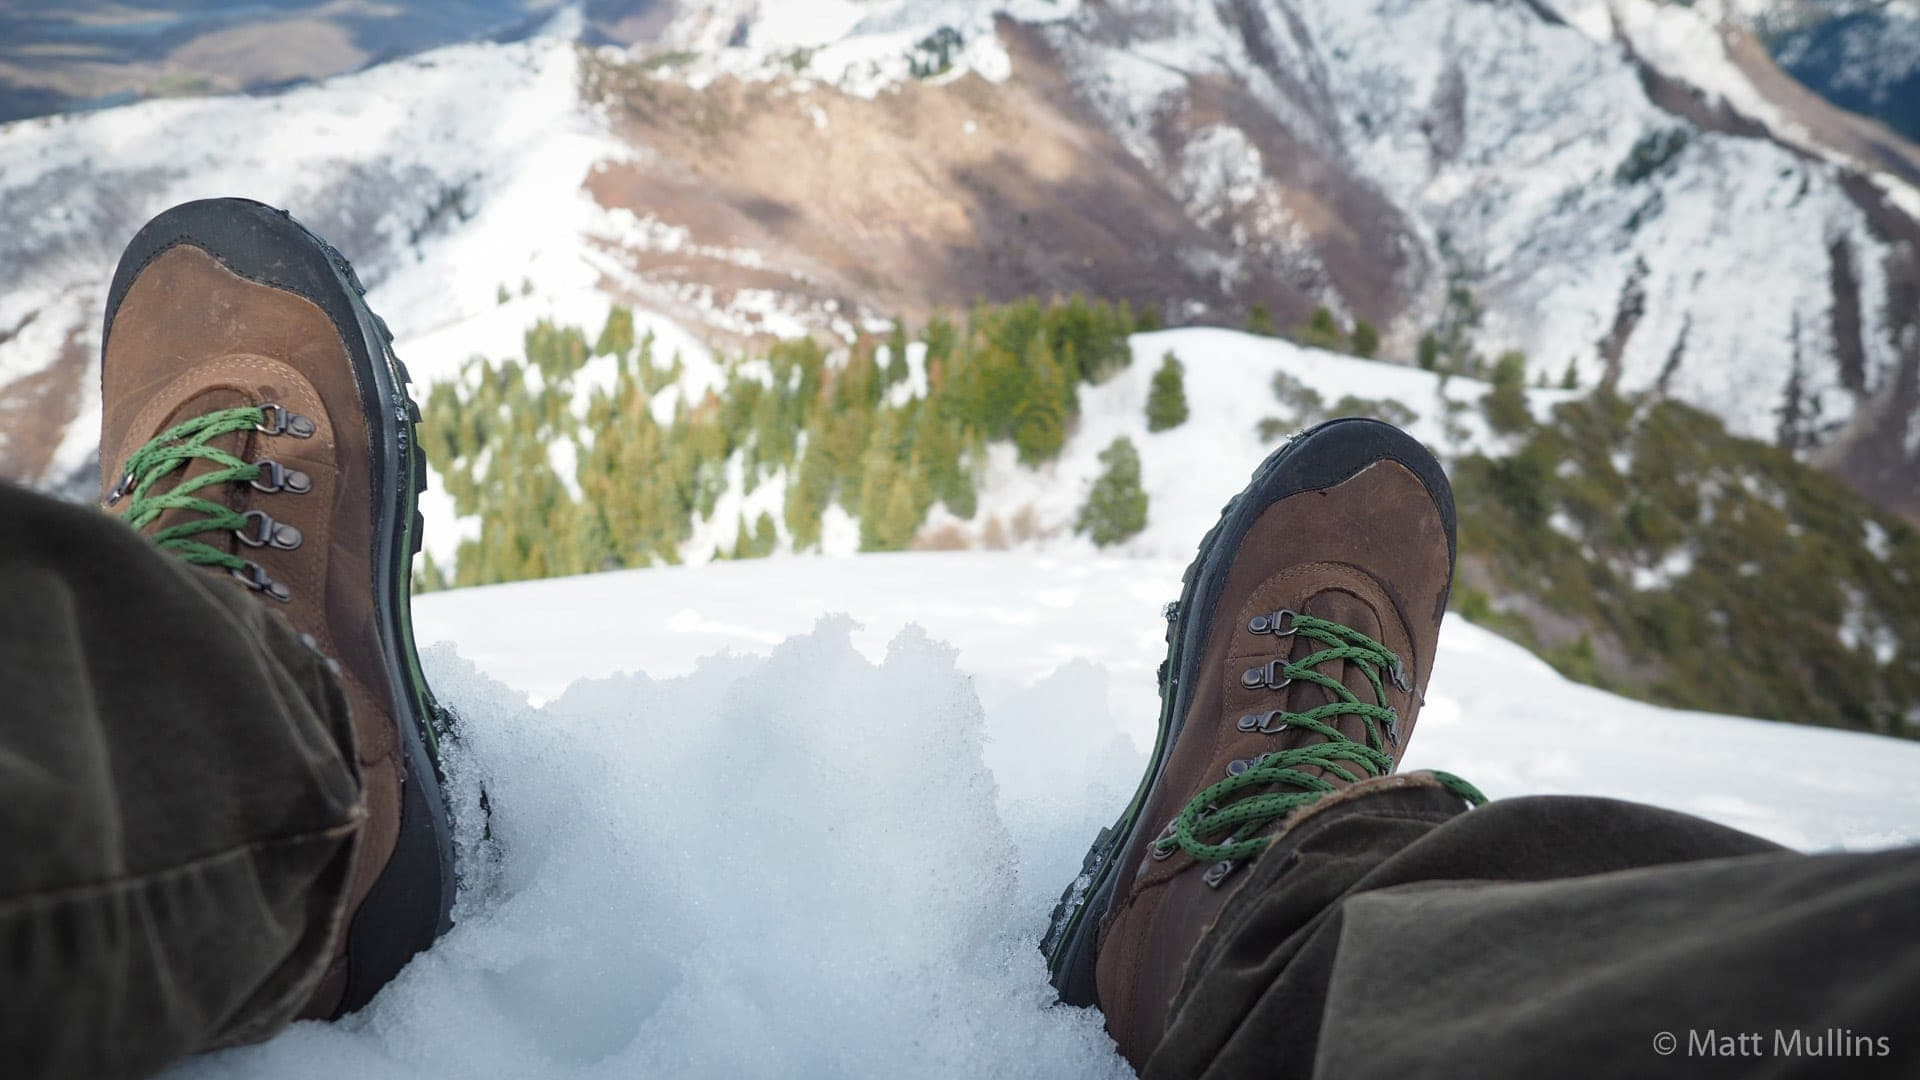 0afad82c281 American Made Hikers: Top 9 Boots for Hiking and Rugged Outdoors Work